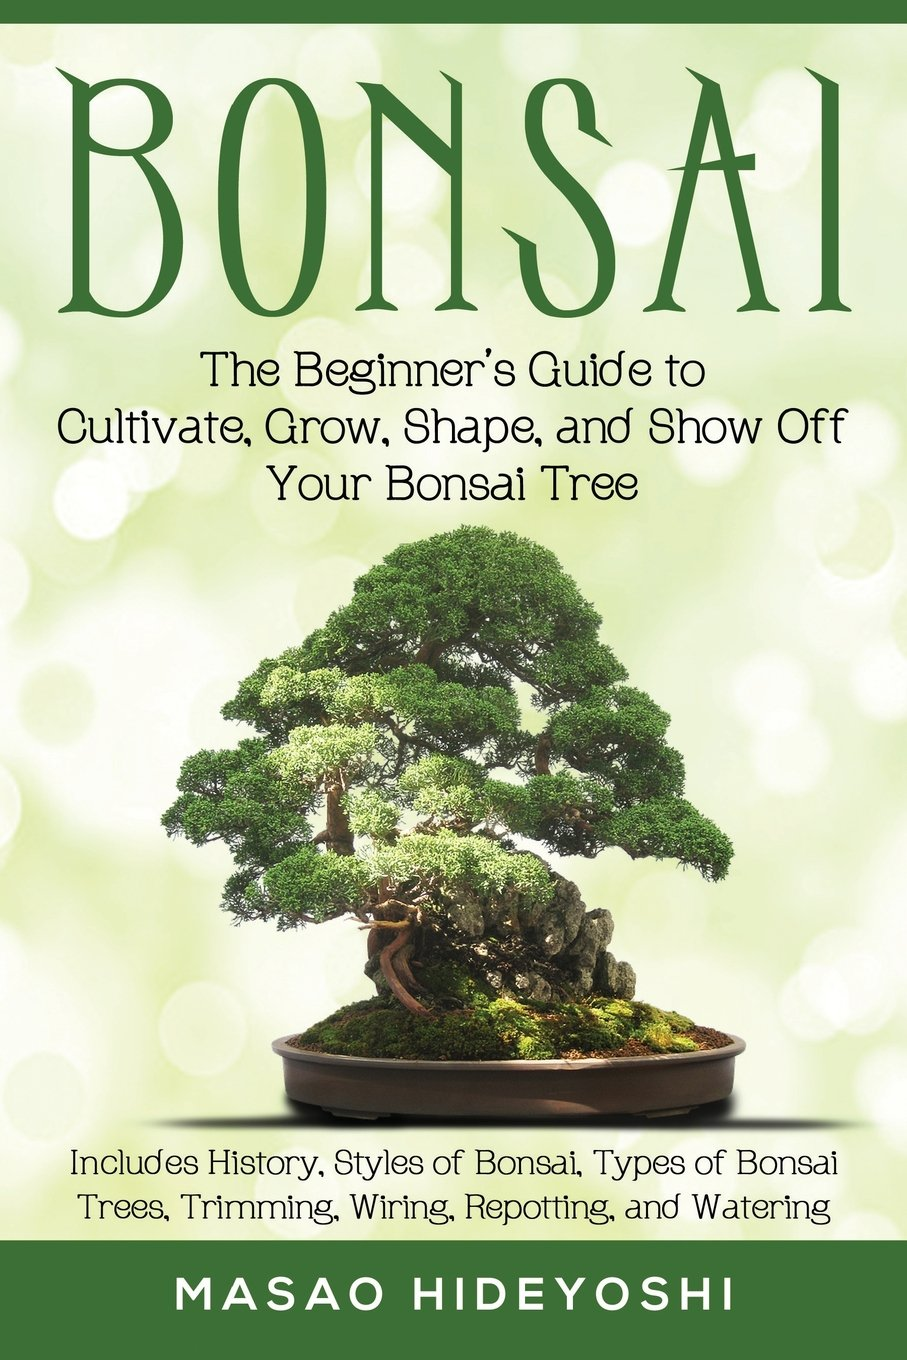 Bonsai The Beginners Guide To Cultivate Grow Shape And Show Off Tree Wiring Video Your Includes History Styles Of Types Trees Trimming